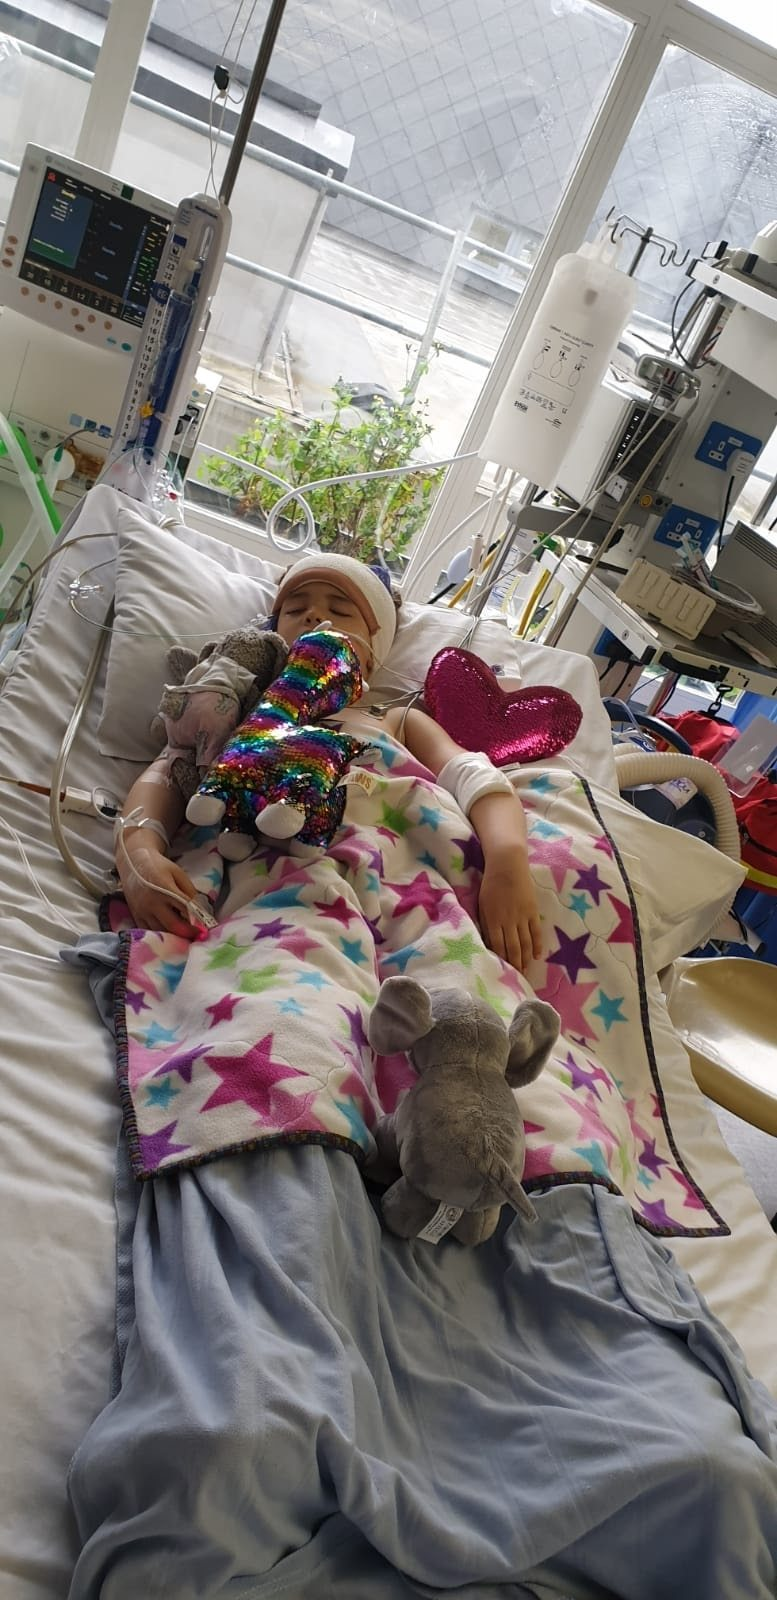 Annabelle was rushed to hospital where scans revealed a tennis-ball sized tumour on her brain